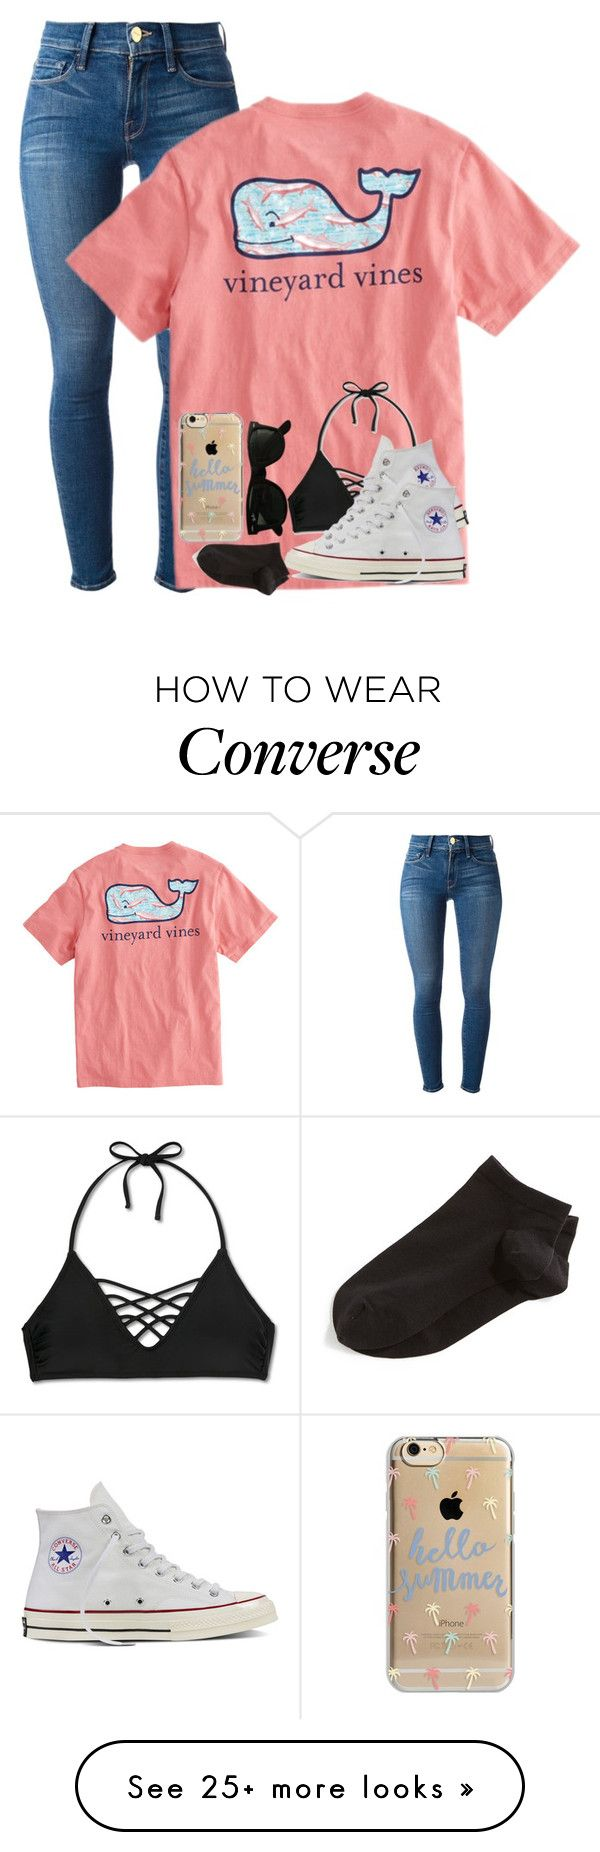 """""""Vineyard Vines"""" by lexiii-caniff on Polyvore featuring Frame Denim, Vineyard Vines, Xhilaration, Converse, Wolford, Agent 18 and Ray-Ban"""